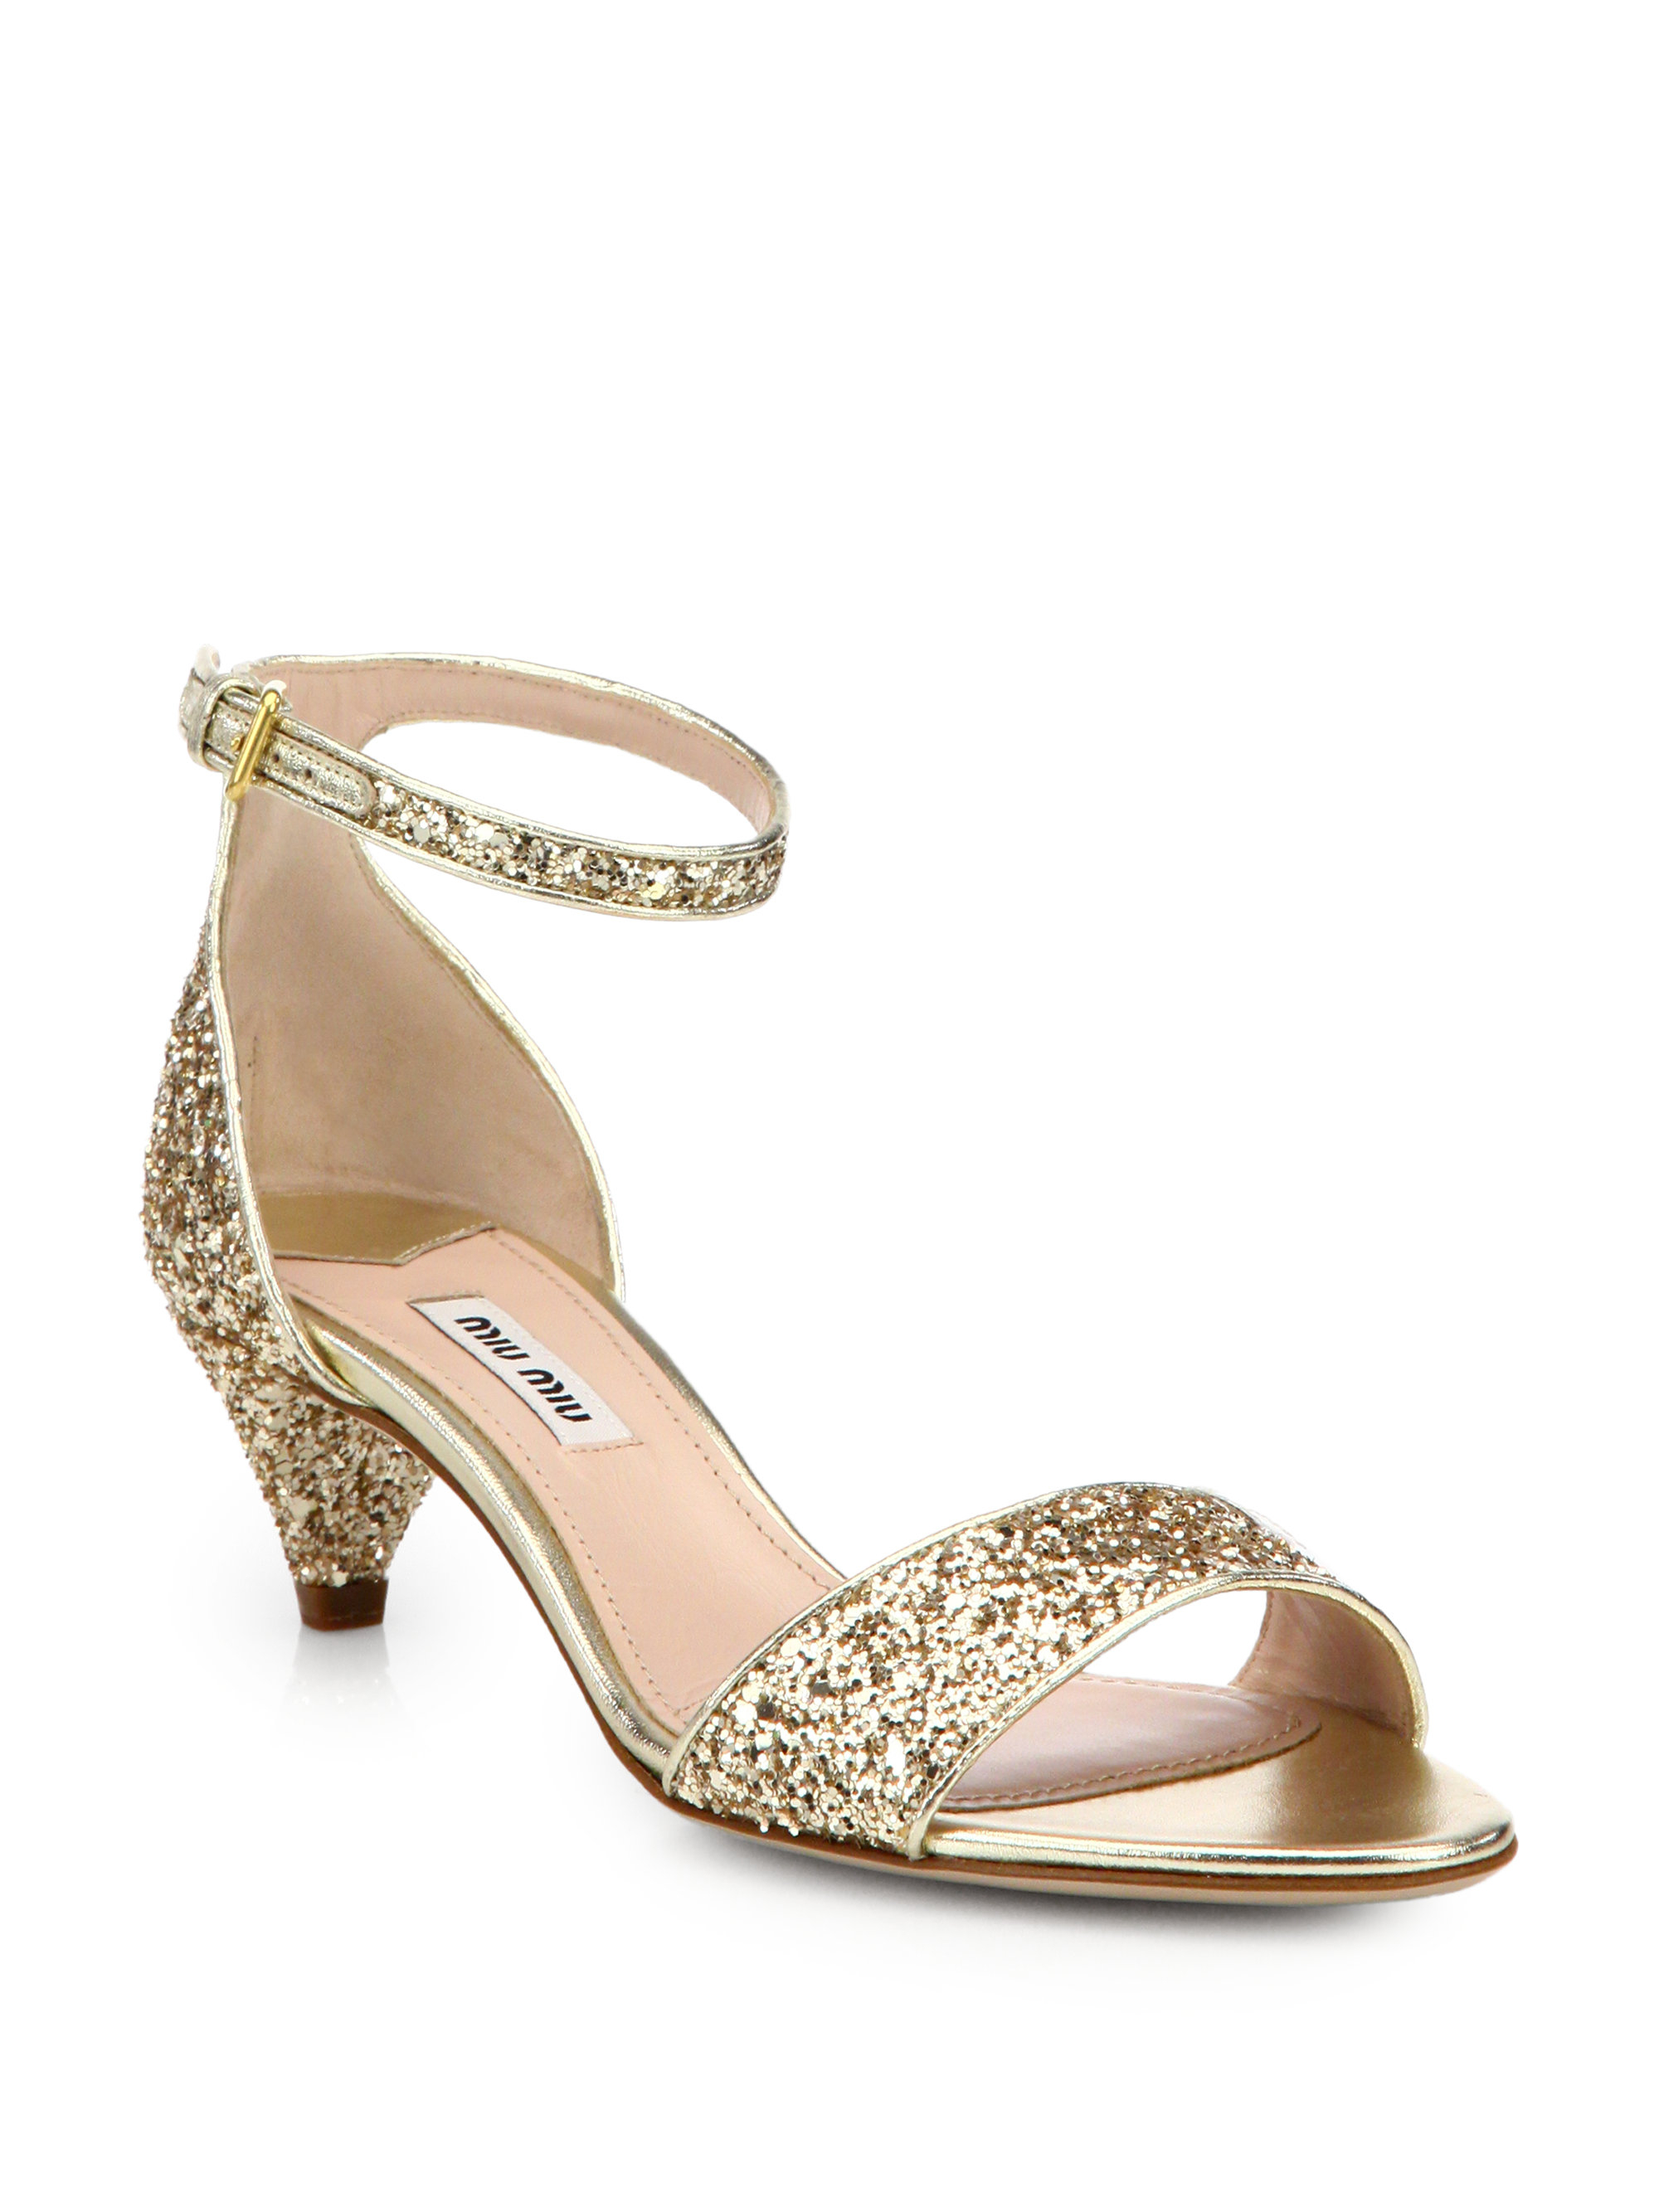 Miu miu Jeweled Glitter Kitten-Heeled Sandals in Metallic | Lyst